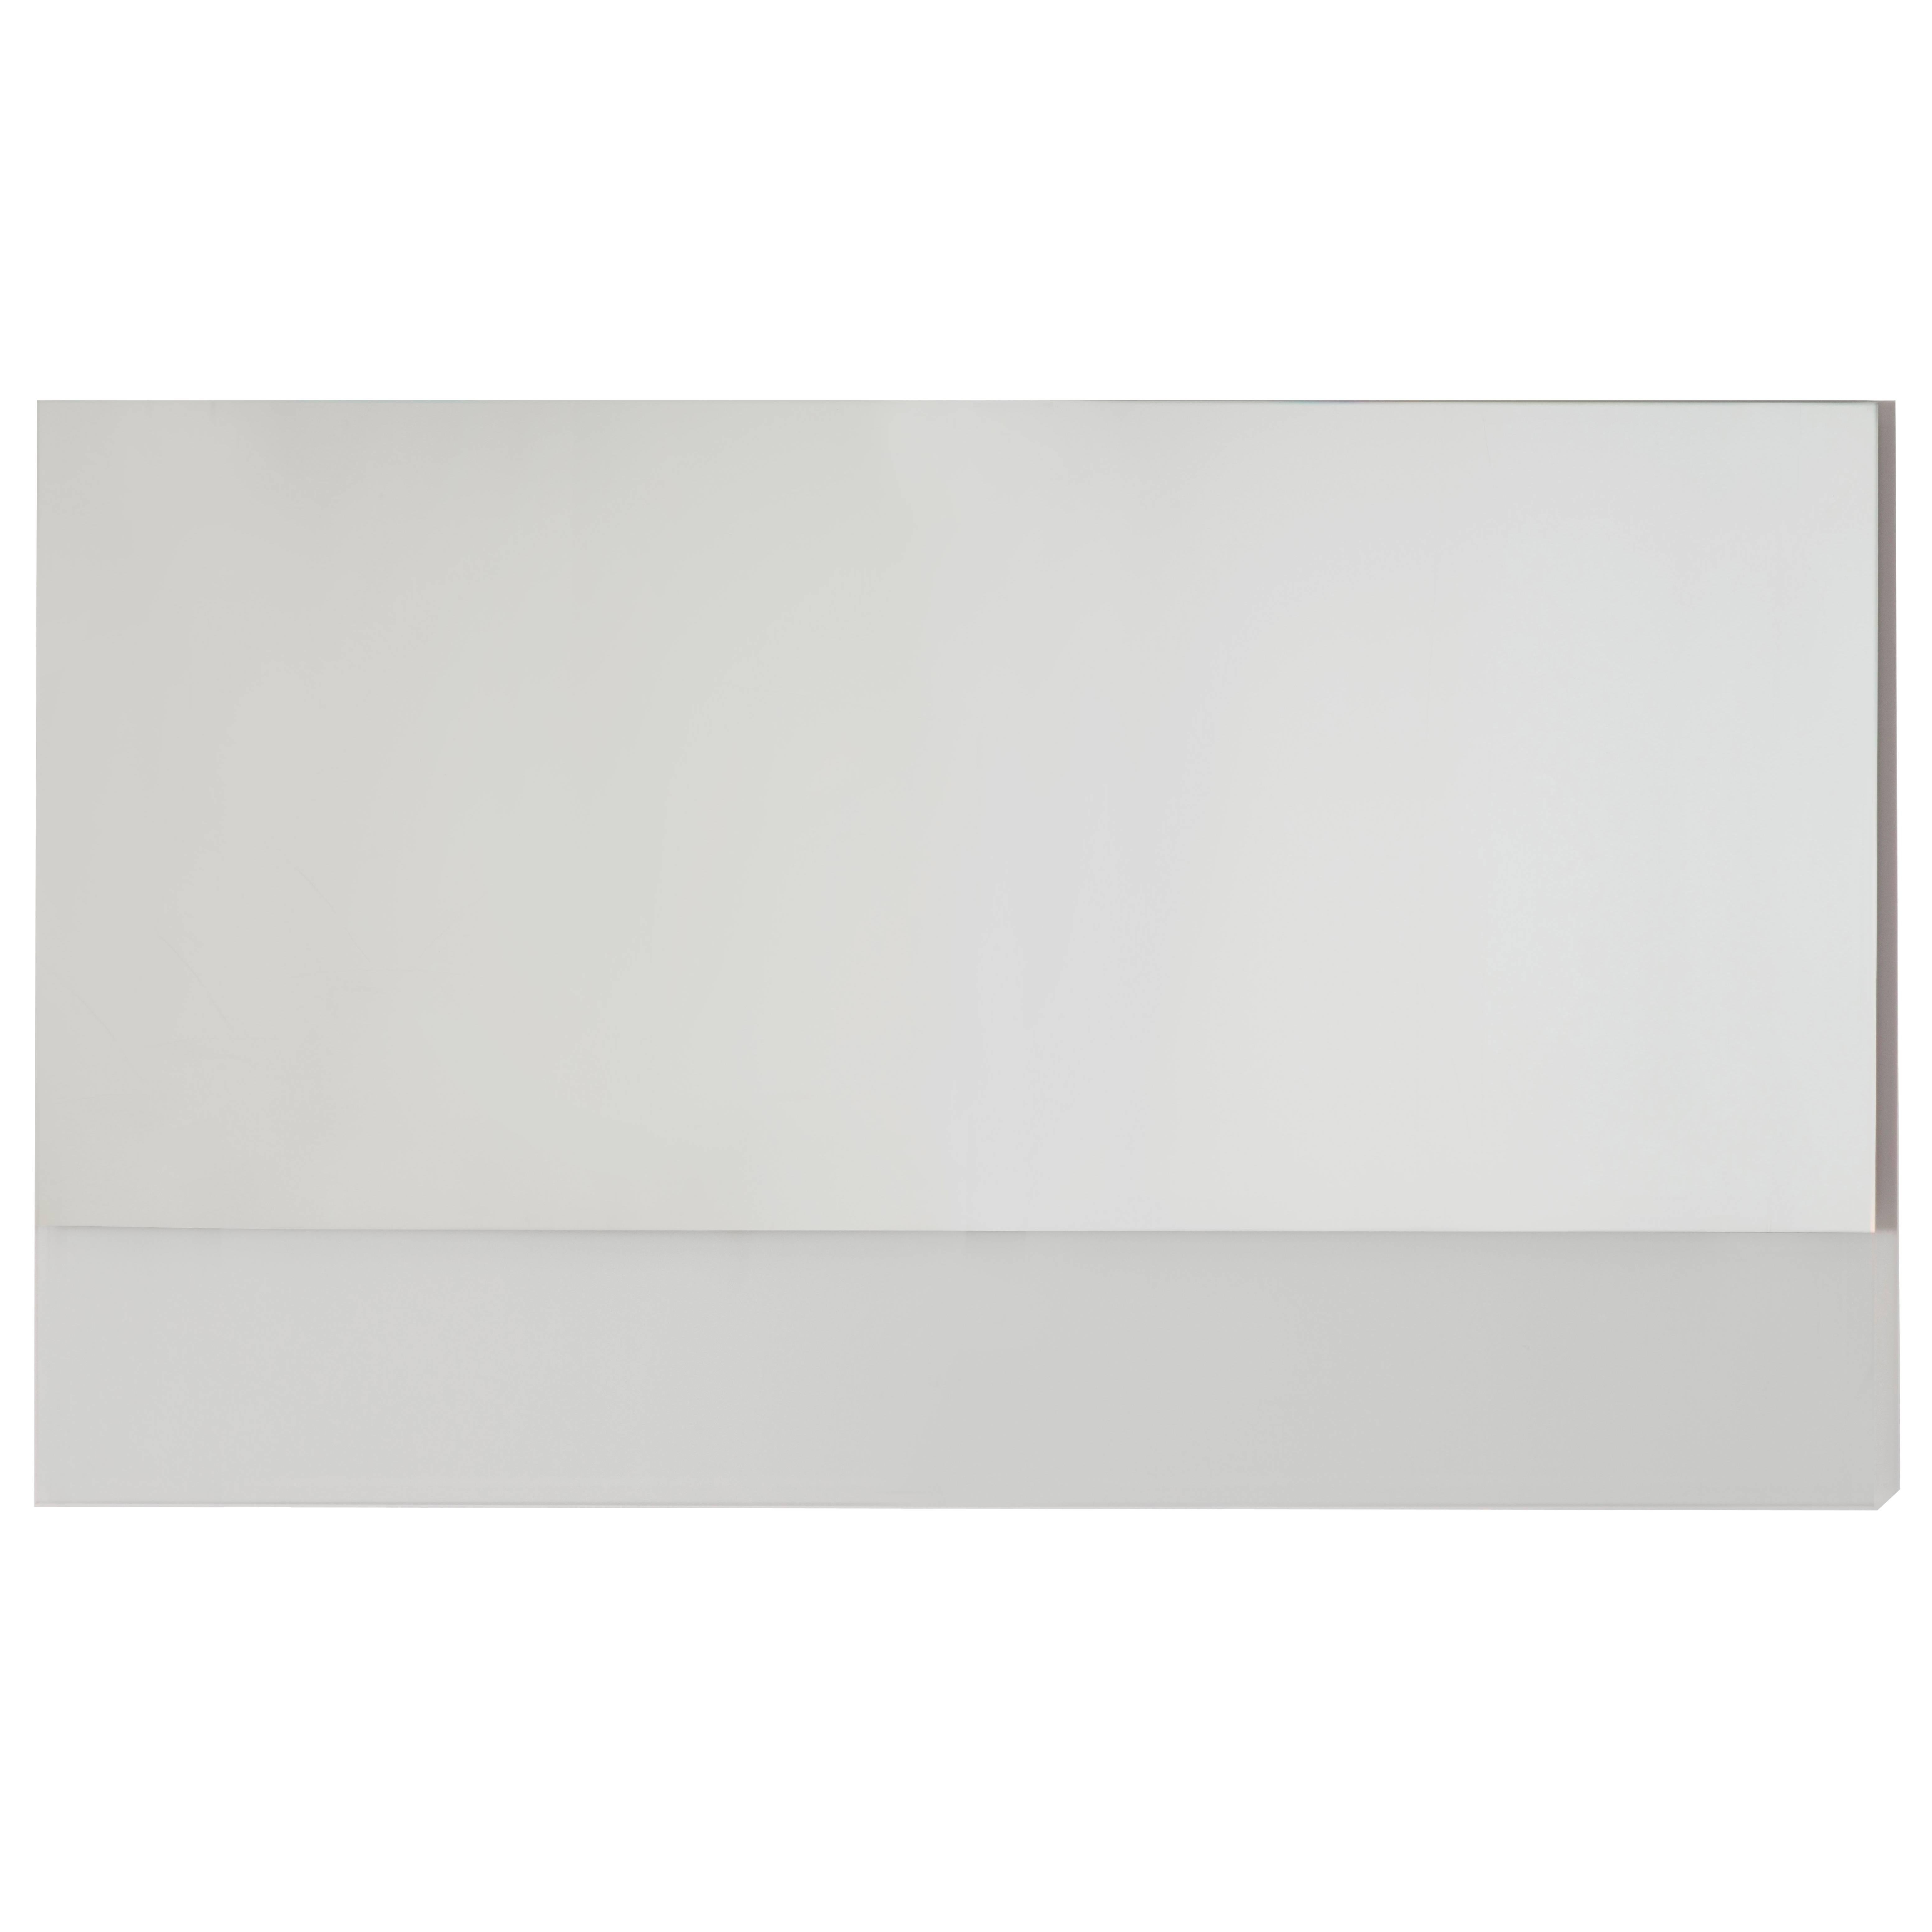 Large clear Mirror - Ida Mirror Collection Contemporary Rectangle